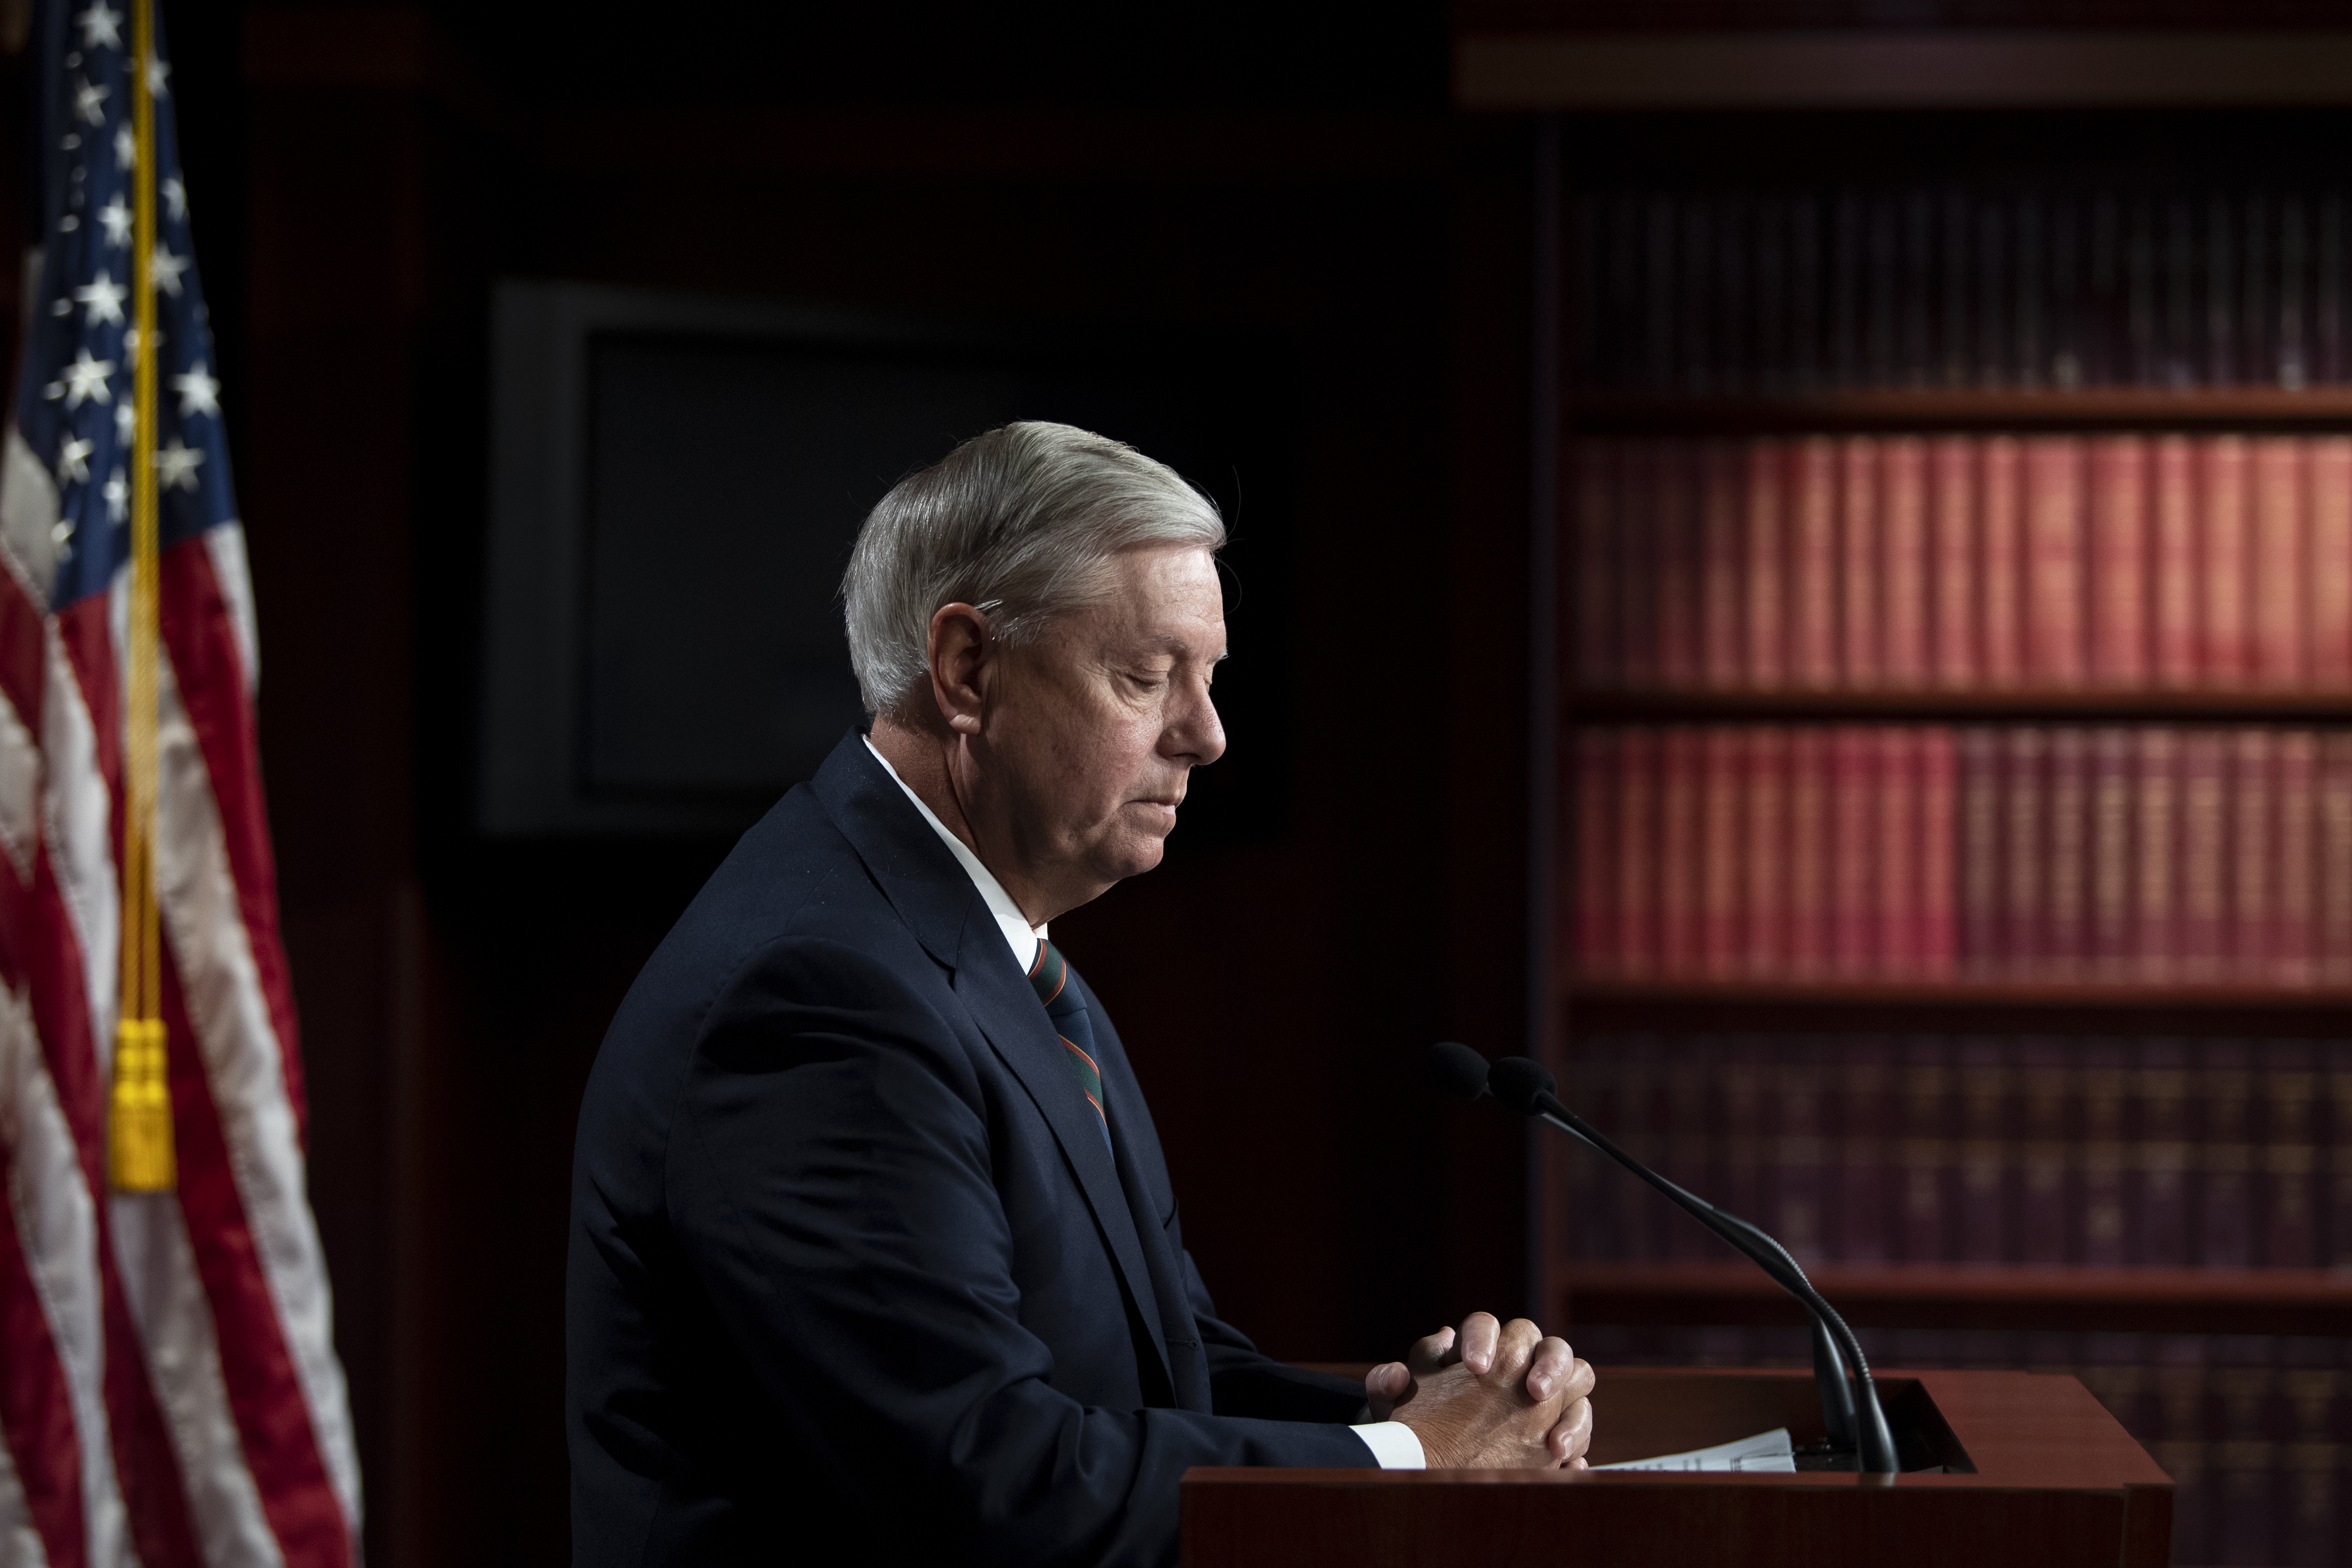 UNITED STATES - January 7: Sen. Lindsey Graham, R-S.C., speaks during a news conference in Washington on Thursday, Jan. 7, 2021. (Photo by Caroline Brehman/CQ-Roll Call, Inc via Getty Images)